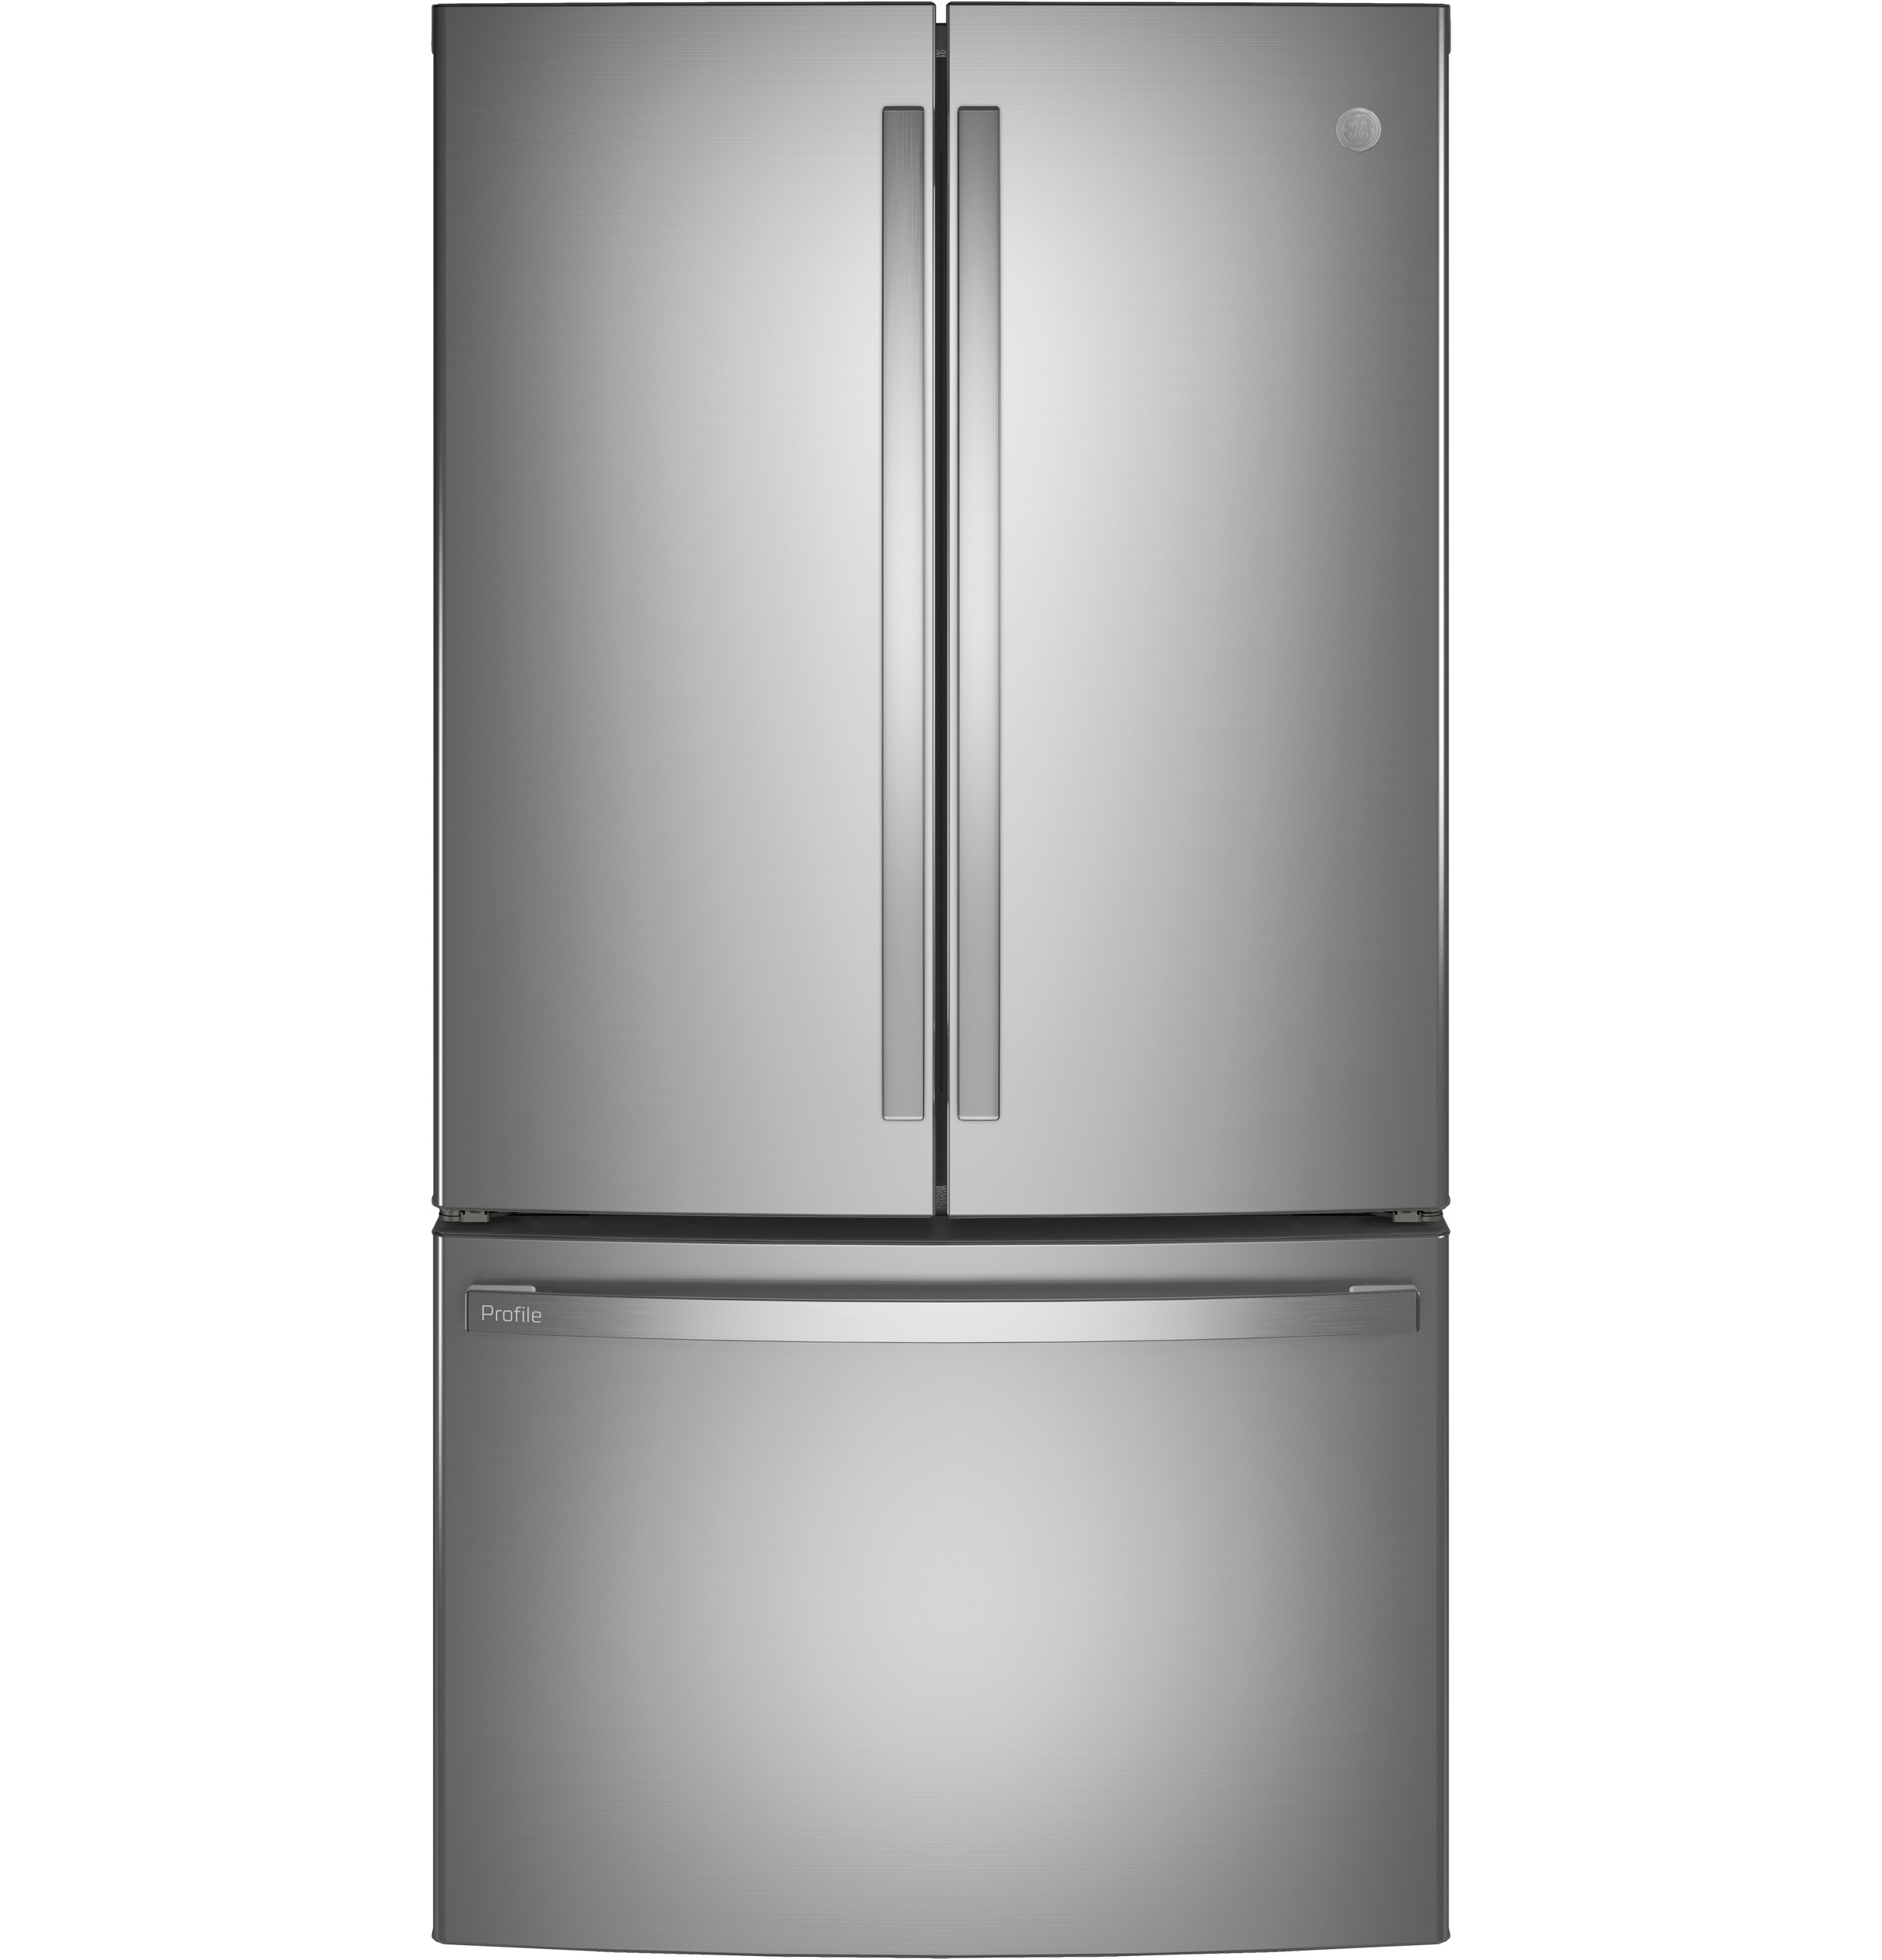 GE Profile GE Profile™ ENERGY STAR® 23.1 Cu. Ft. Counter-Depth French-Door Refrigerator